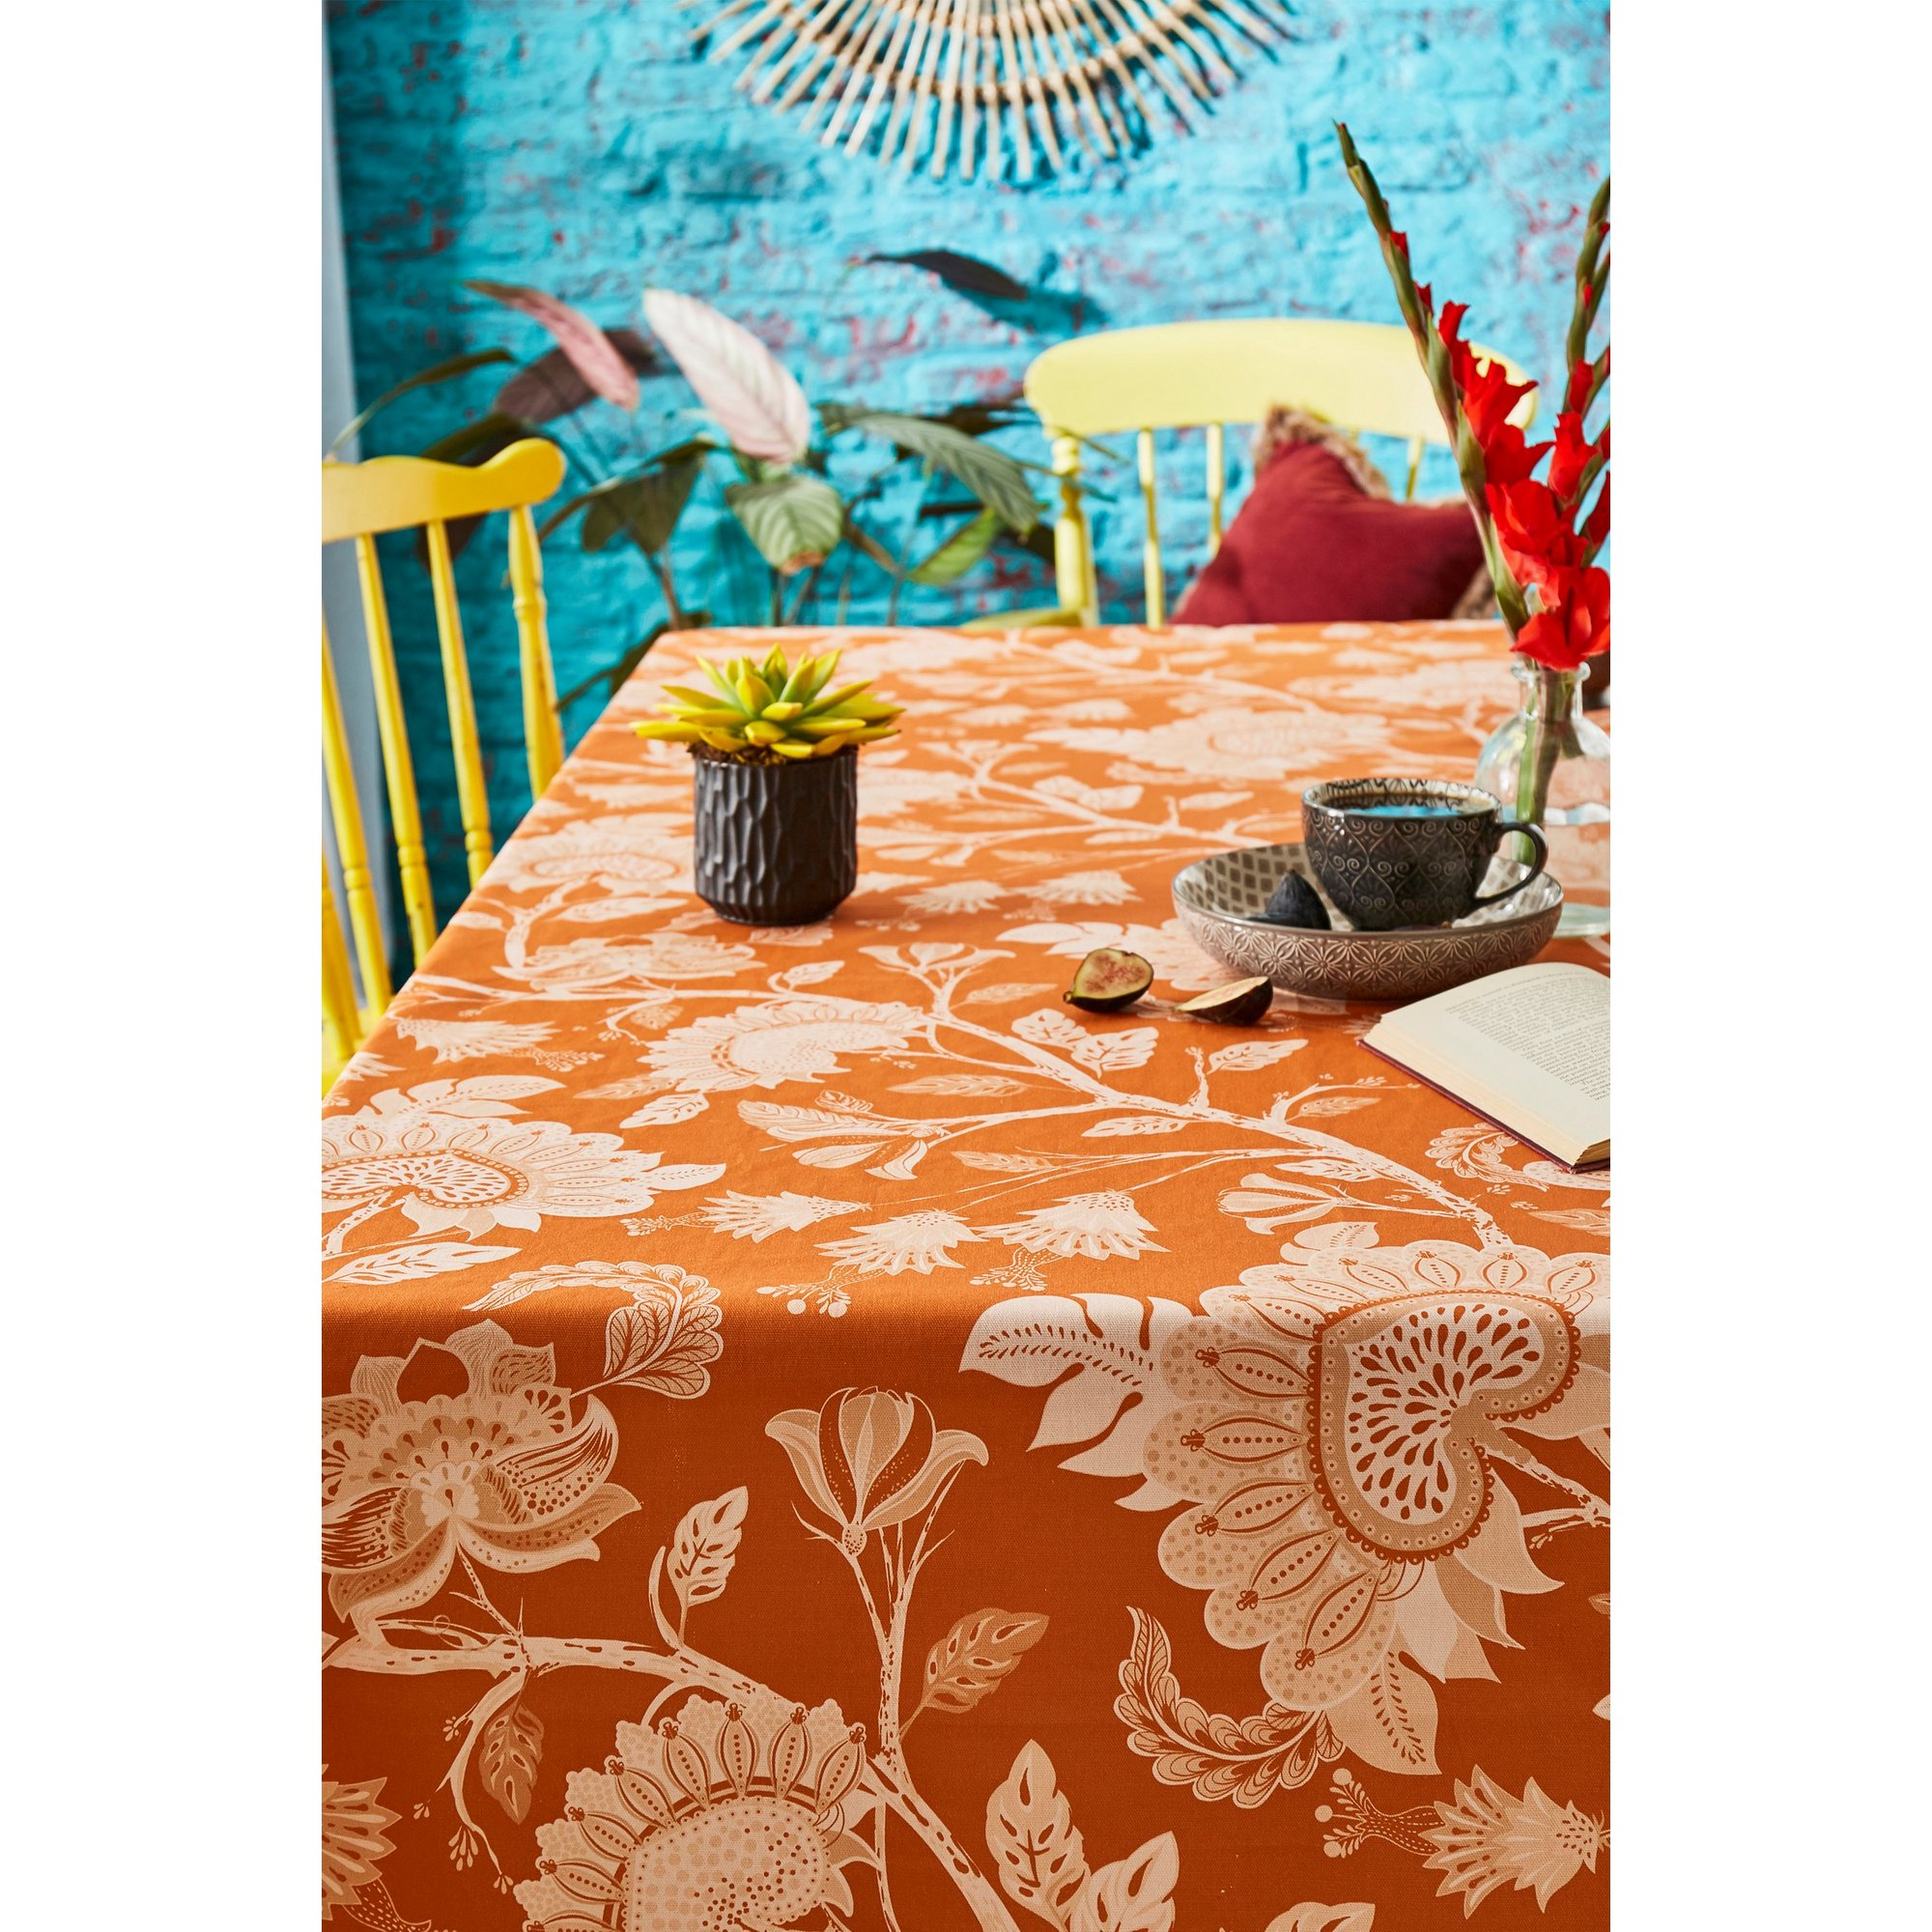 Image of Joe Brown Escape to Africa Tablecloth